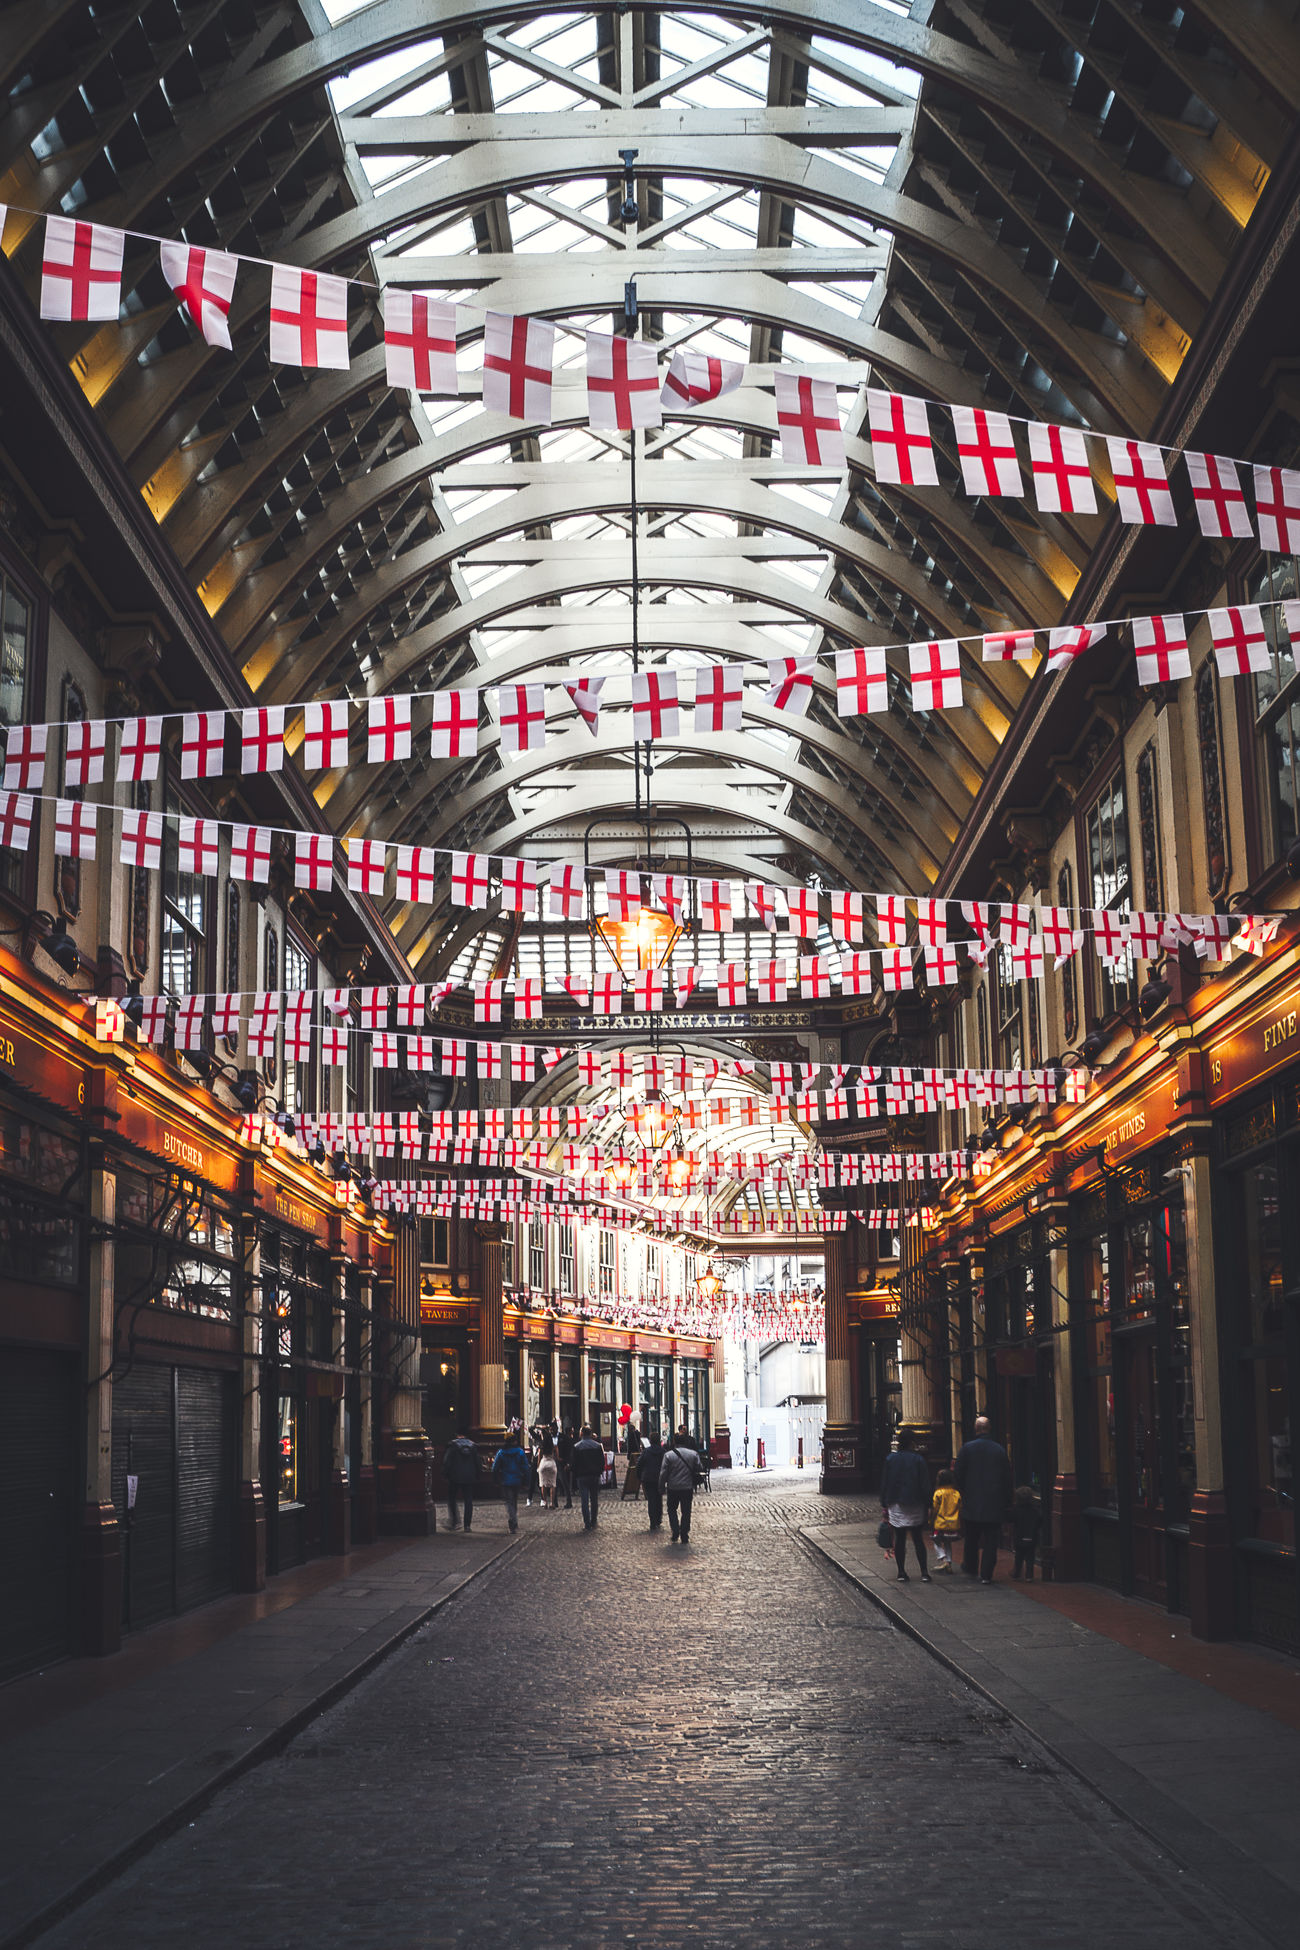 Located at the heart of the old Roman city, Leadenhall market dates back to 1321 and has been serving City clientele meat and poultry ever since. Today's current building is late Victorian and features in Harry Potter and the Philosopher's Stone as the area around and entrance to Diagon Alley. Read more: Architecture Britain Building But City Diagon Alley England Enjoying Life GB Hanging Out Historic Indoors  KINGDOM Leadenhall London Market P Potted Plant Roman Square Squaready Tourism Uk Victorian Walks